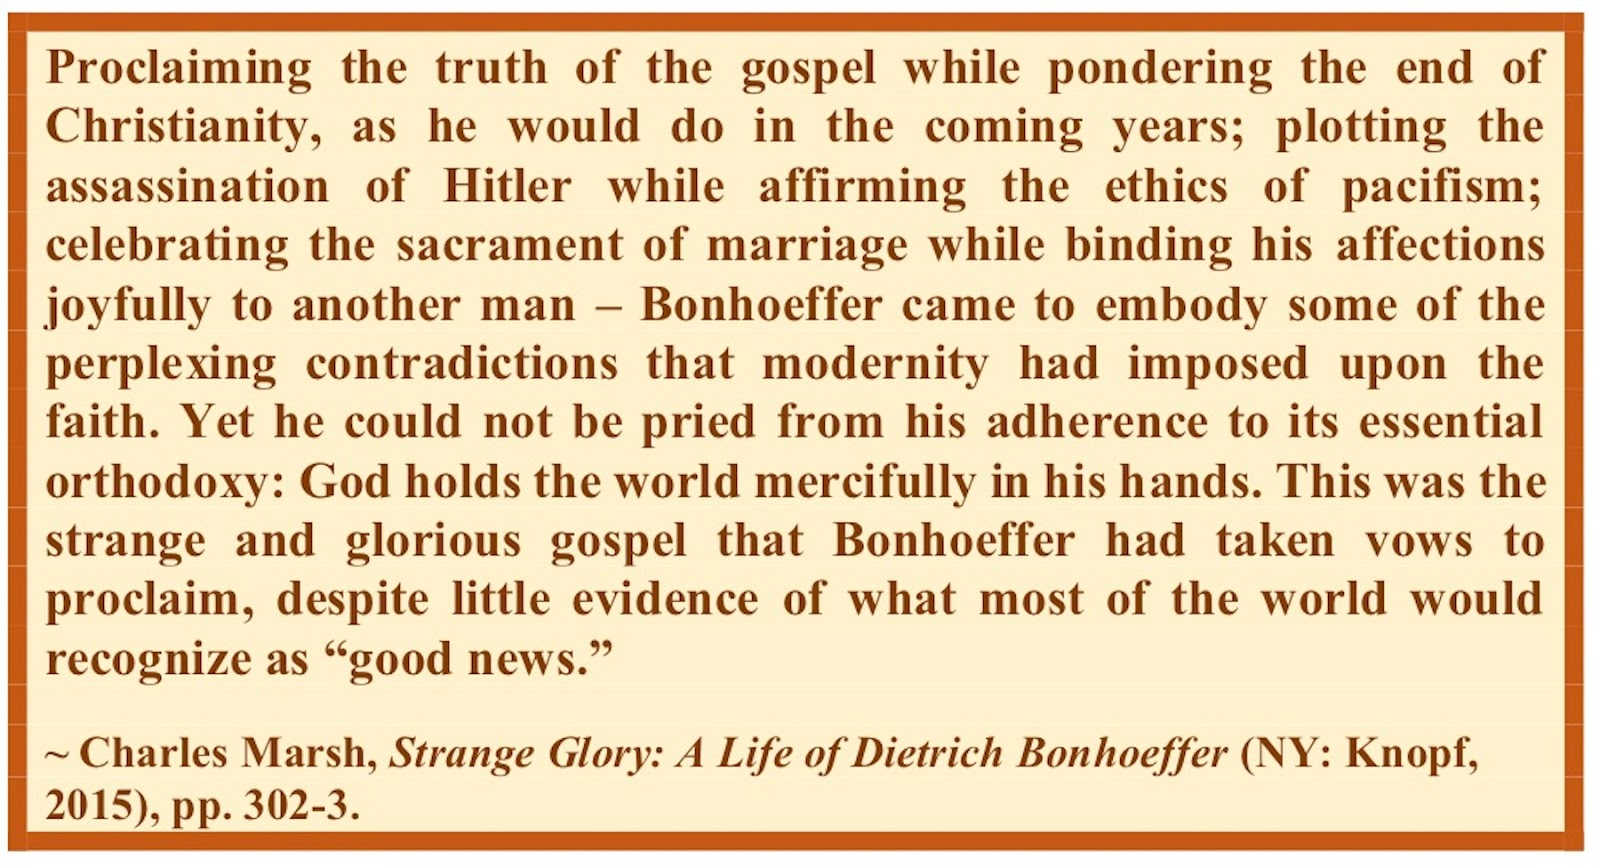 a report on the life of dietrich bonhoeffer and his ministry at the confessing church Bonhoeffer came from a privileged family where a life of music, scholarship and travel was the norm yet when the german evangelical church welcomed the nazi regime into power, bonhoeffer joined the confessing church in protest he began teaching at finkenwalde, a confessing church.